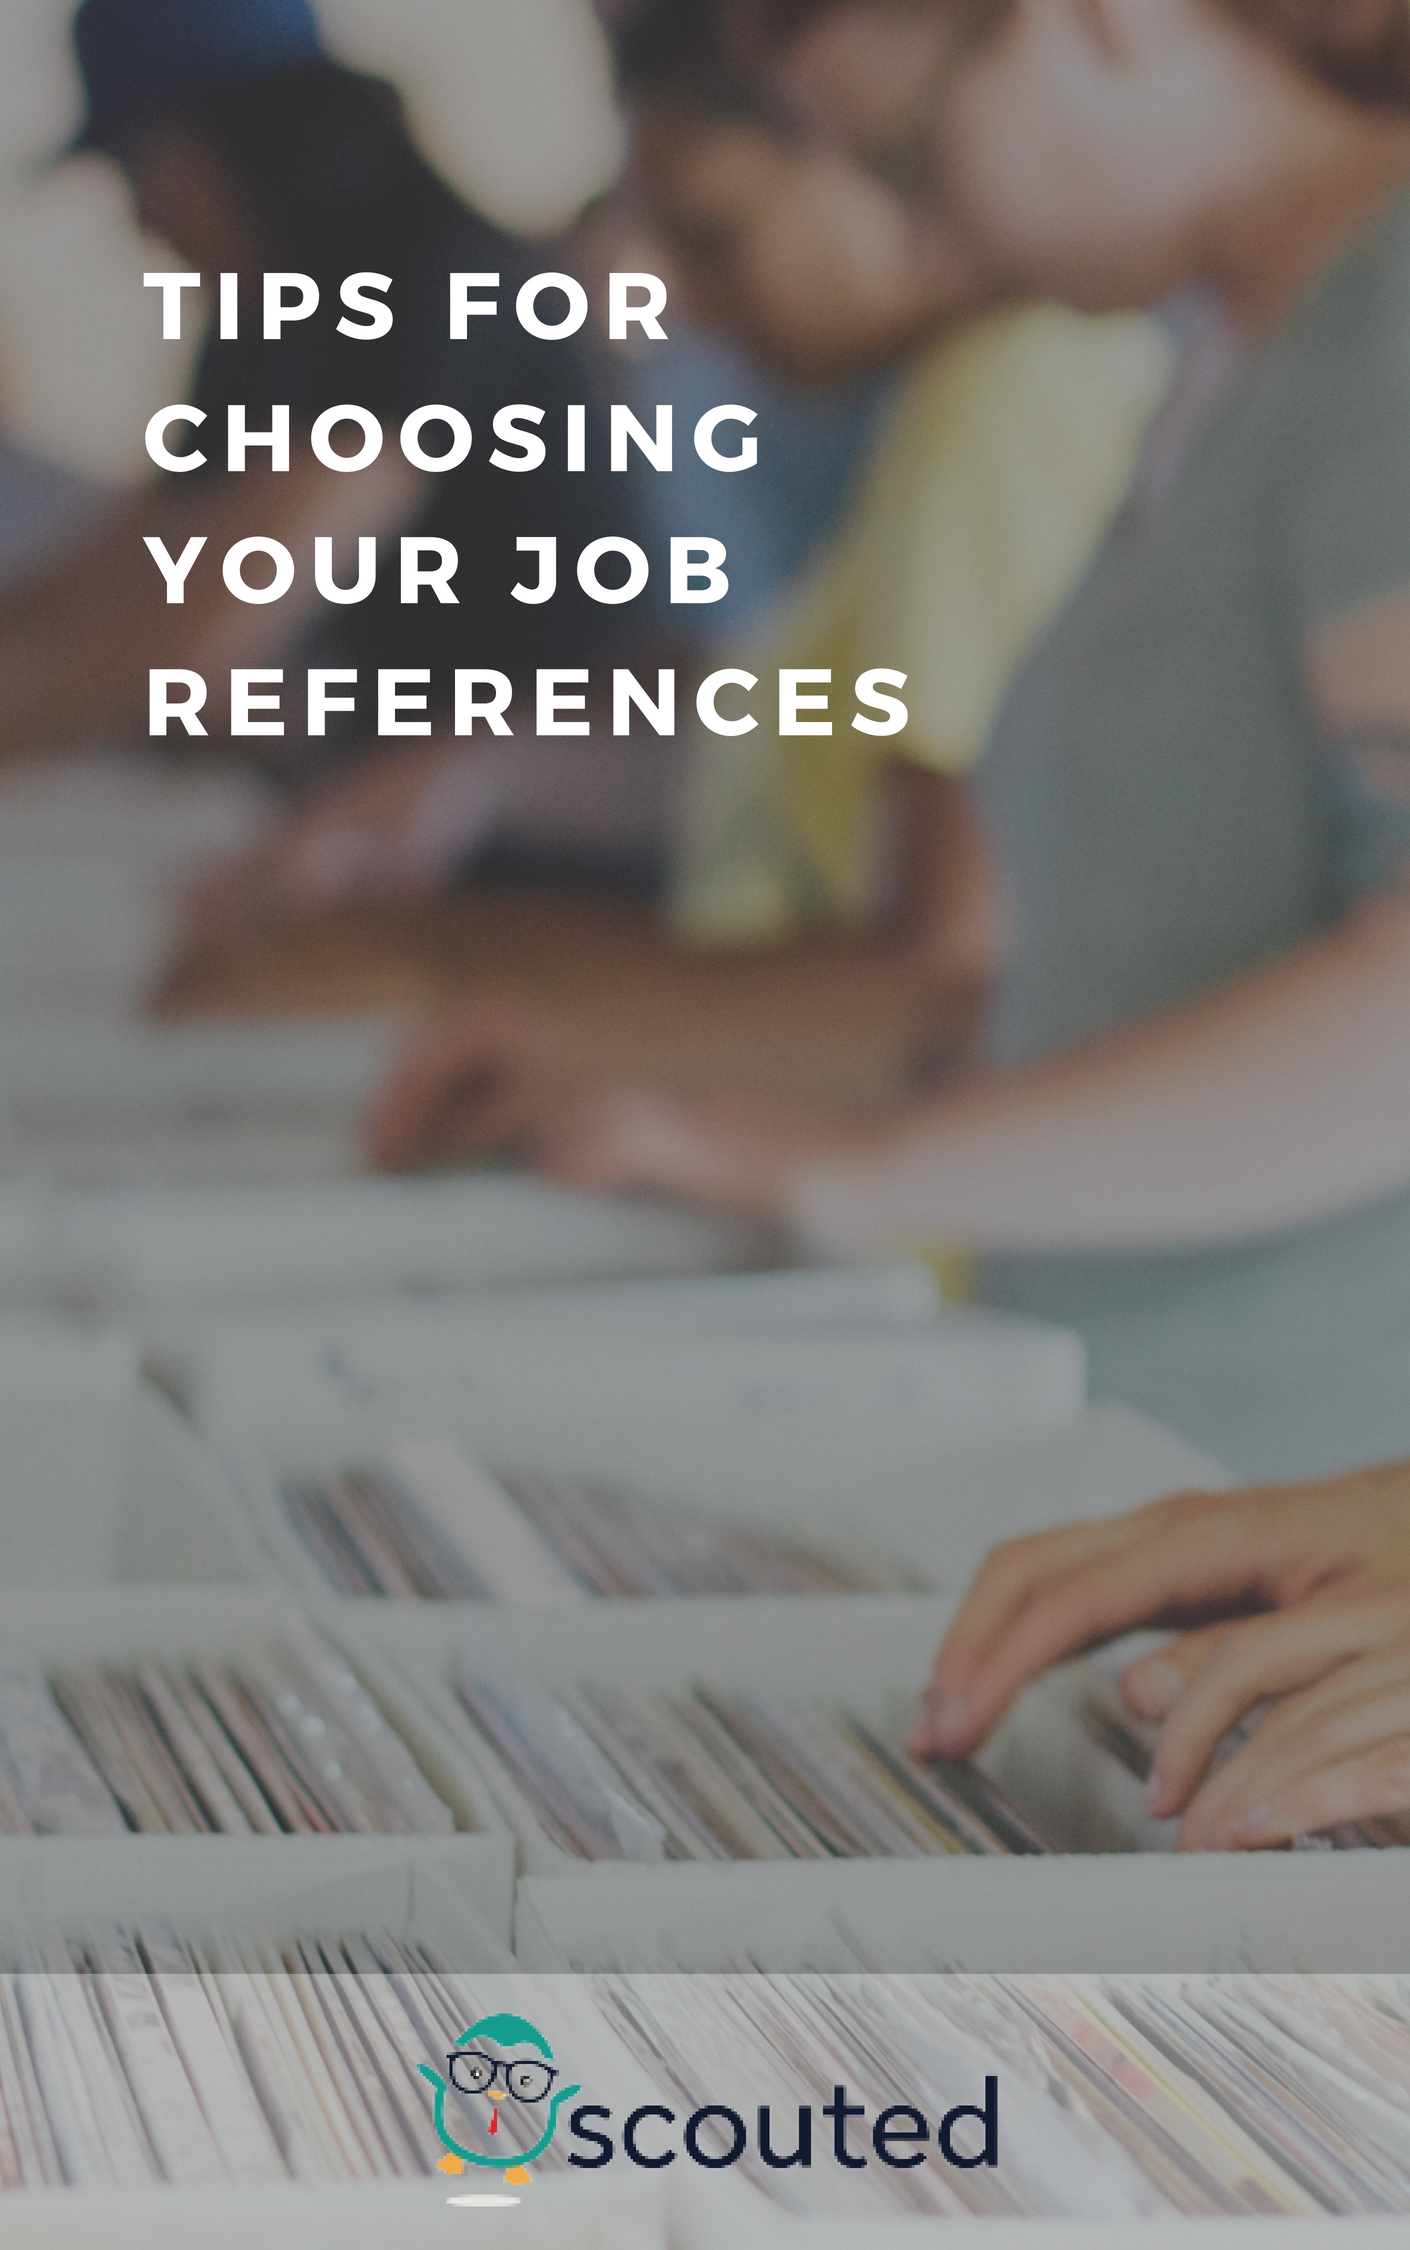 References might be a bigger deal than you think. Believe It or not, references can make or break your job prospects, so it's extremely important to choose them wisely. Even if you had a great interview, a word from one of your references is all it could take to have the hiring manager second-guess you as the right candidate, or get the vote of confidence they need to bring you onto the team. So in a world of Amazon reviews, make sure yours are five stars!